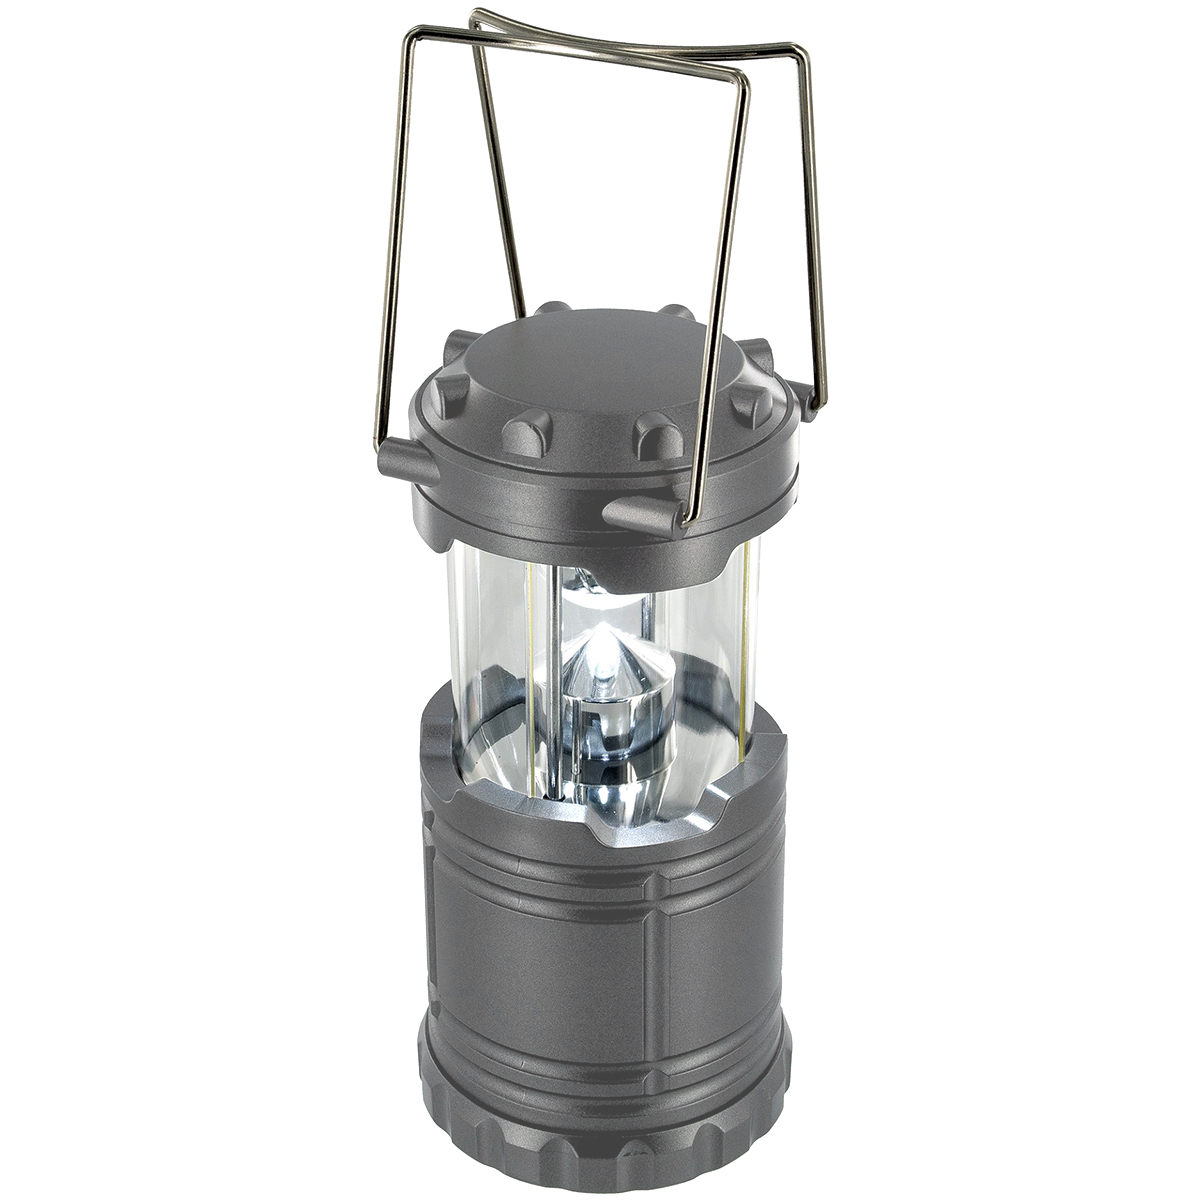 Sentinel HIGHLANDER COMPACT BRIGHT 7 LED COLLAPSIBLE LANTERN PORTABLE CAMPING TENT LIGHT  sc 1 st  eBay & HIGHLANDER COMPACT BRIGHT 7 LED COLLAPSIBLE LANTERN PORTABLE ...